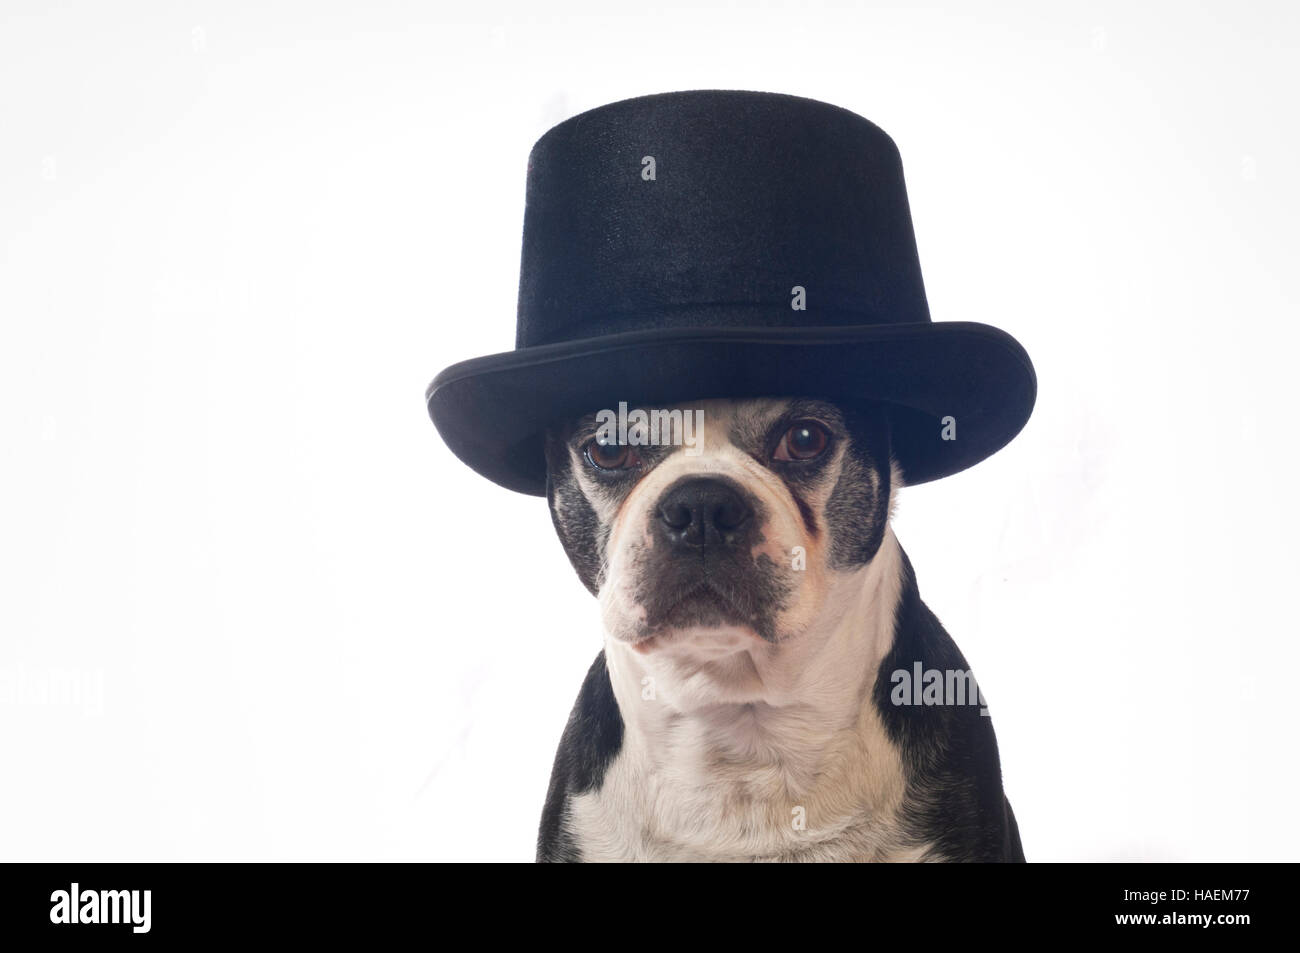 Boston terrier dog with disguise in front of white backdrop - Stock Image